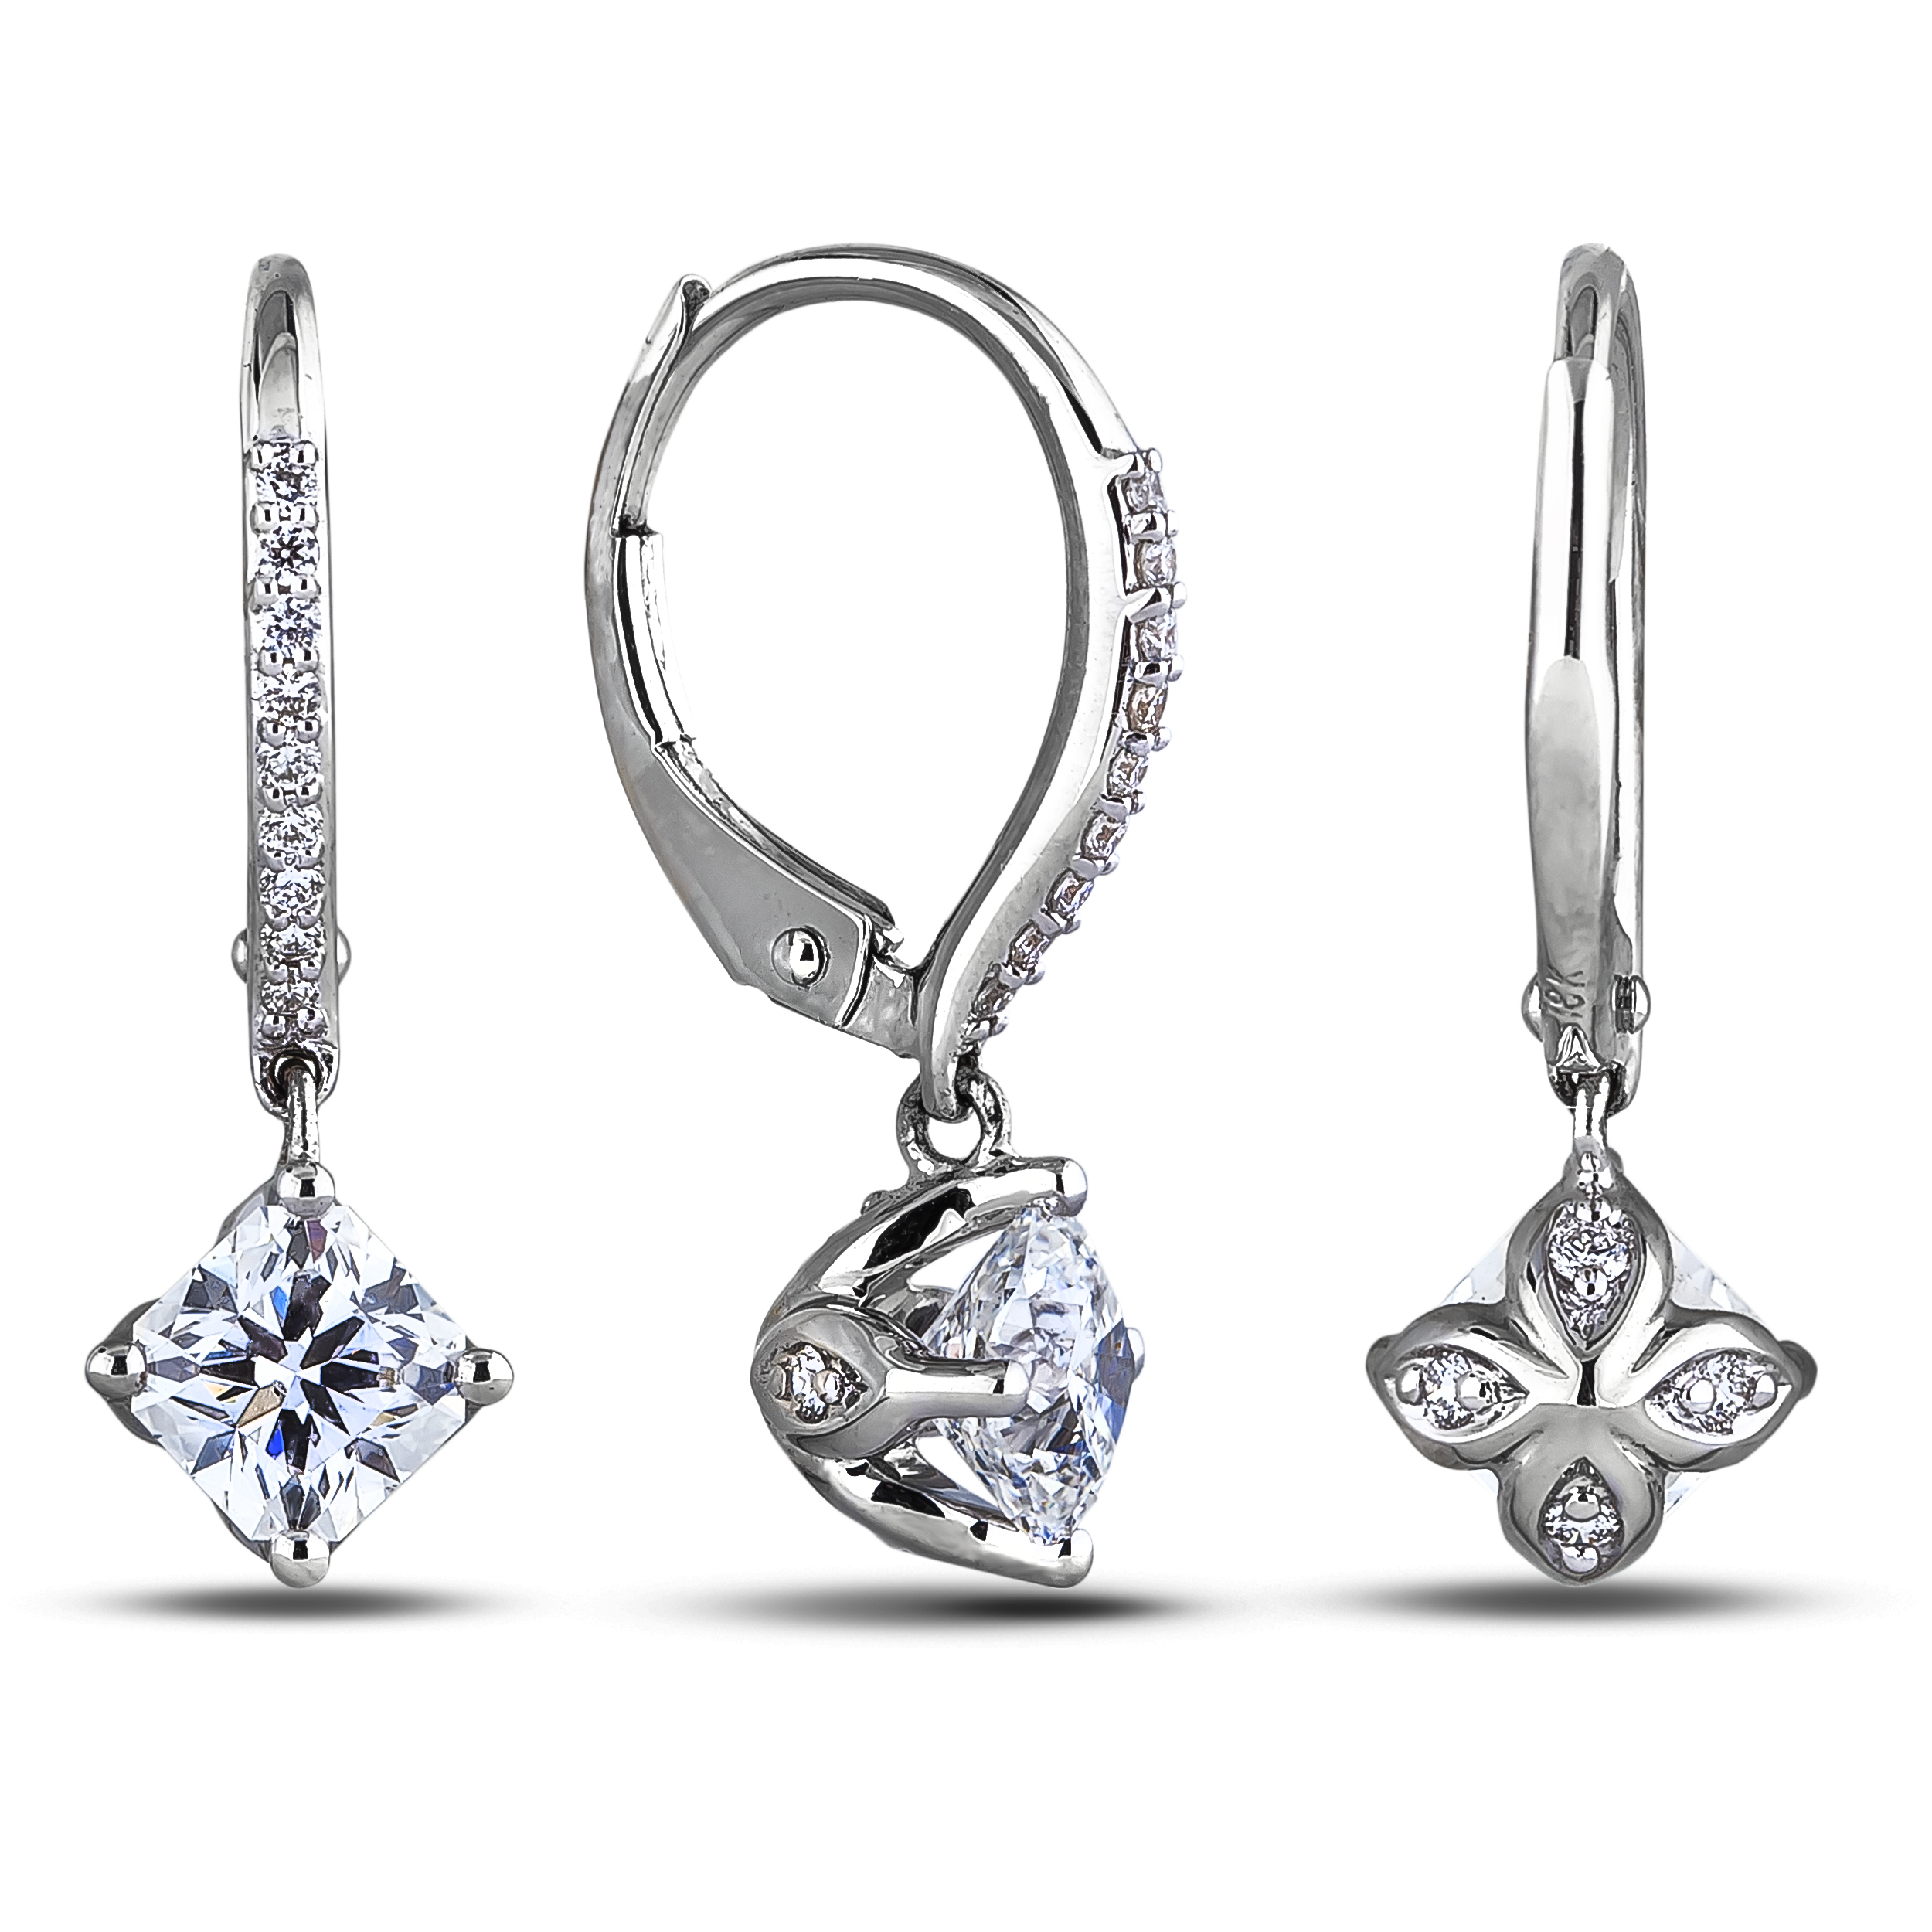 Diamond Dangle Earrings SGE339 (Earrings)